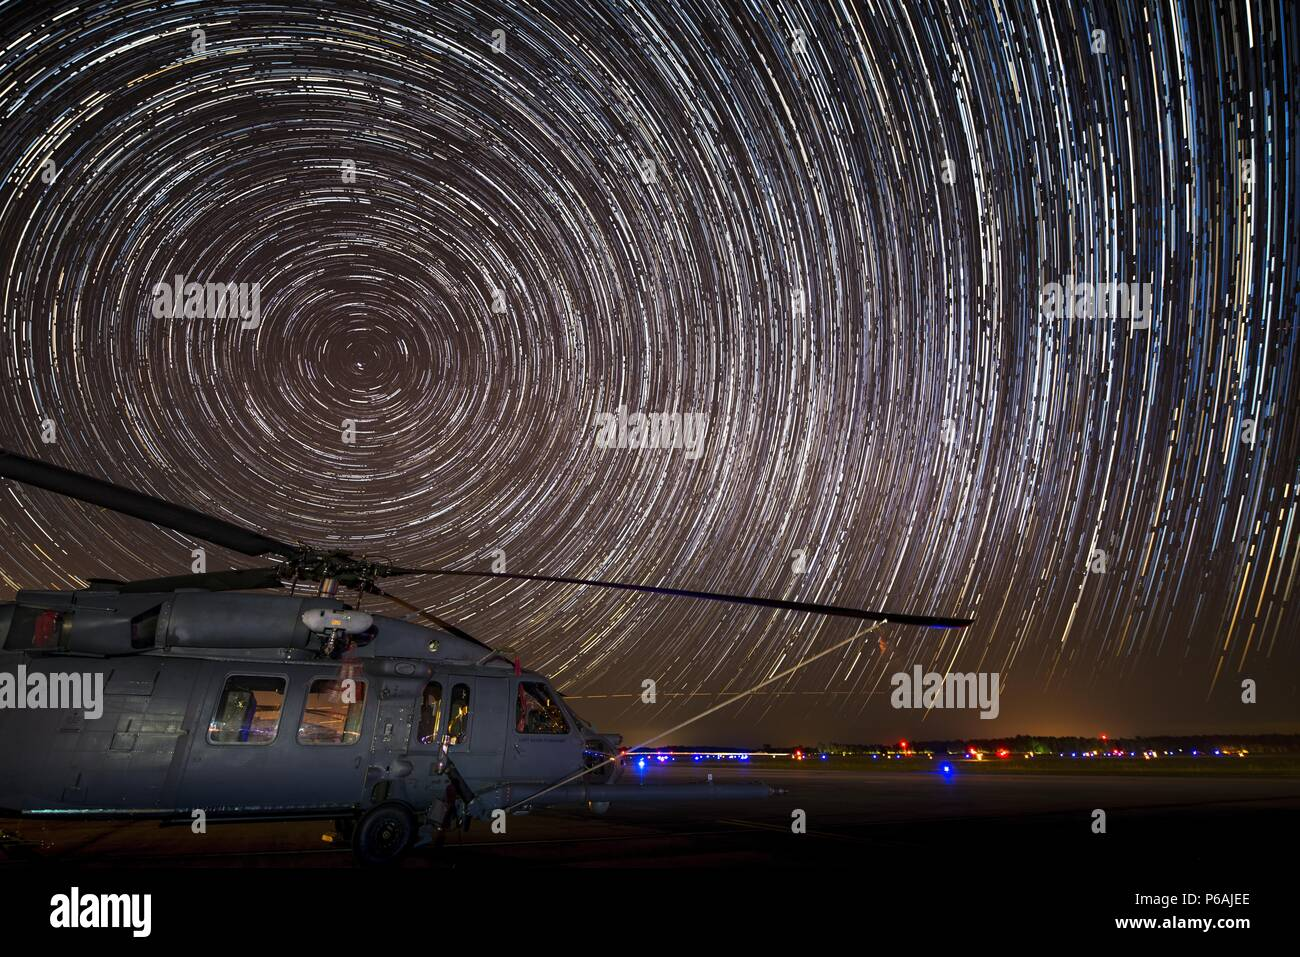 Star light shines on an HH-60G Pave Hawk on the flightline during the Eta Aquarid meteor shower, May 5, 2016, at Moody Air Force Base, Ga. This photo shows the path of the stars as the Earth rotates over the course of two hours. (U.S. Air Force photo by Senior Airman Ryan Callaghan) - Stock Image